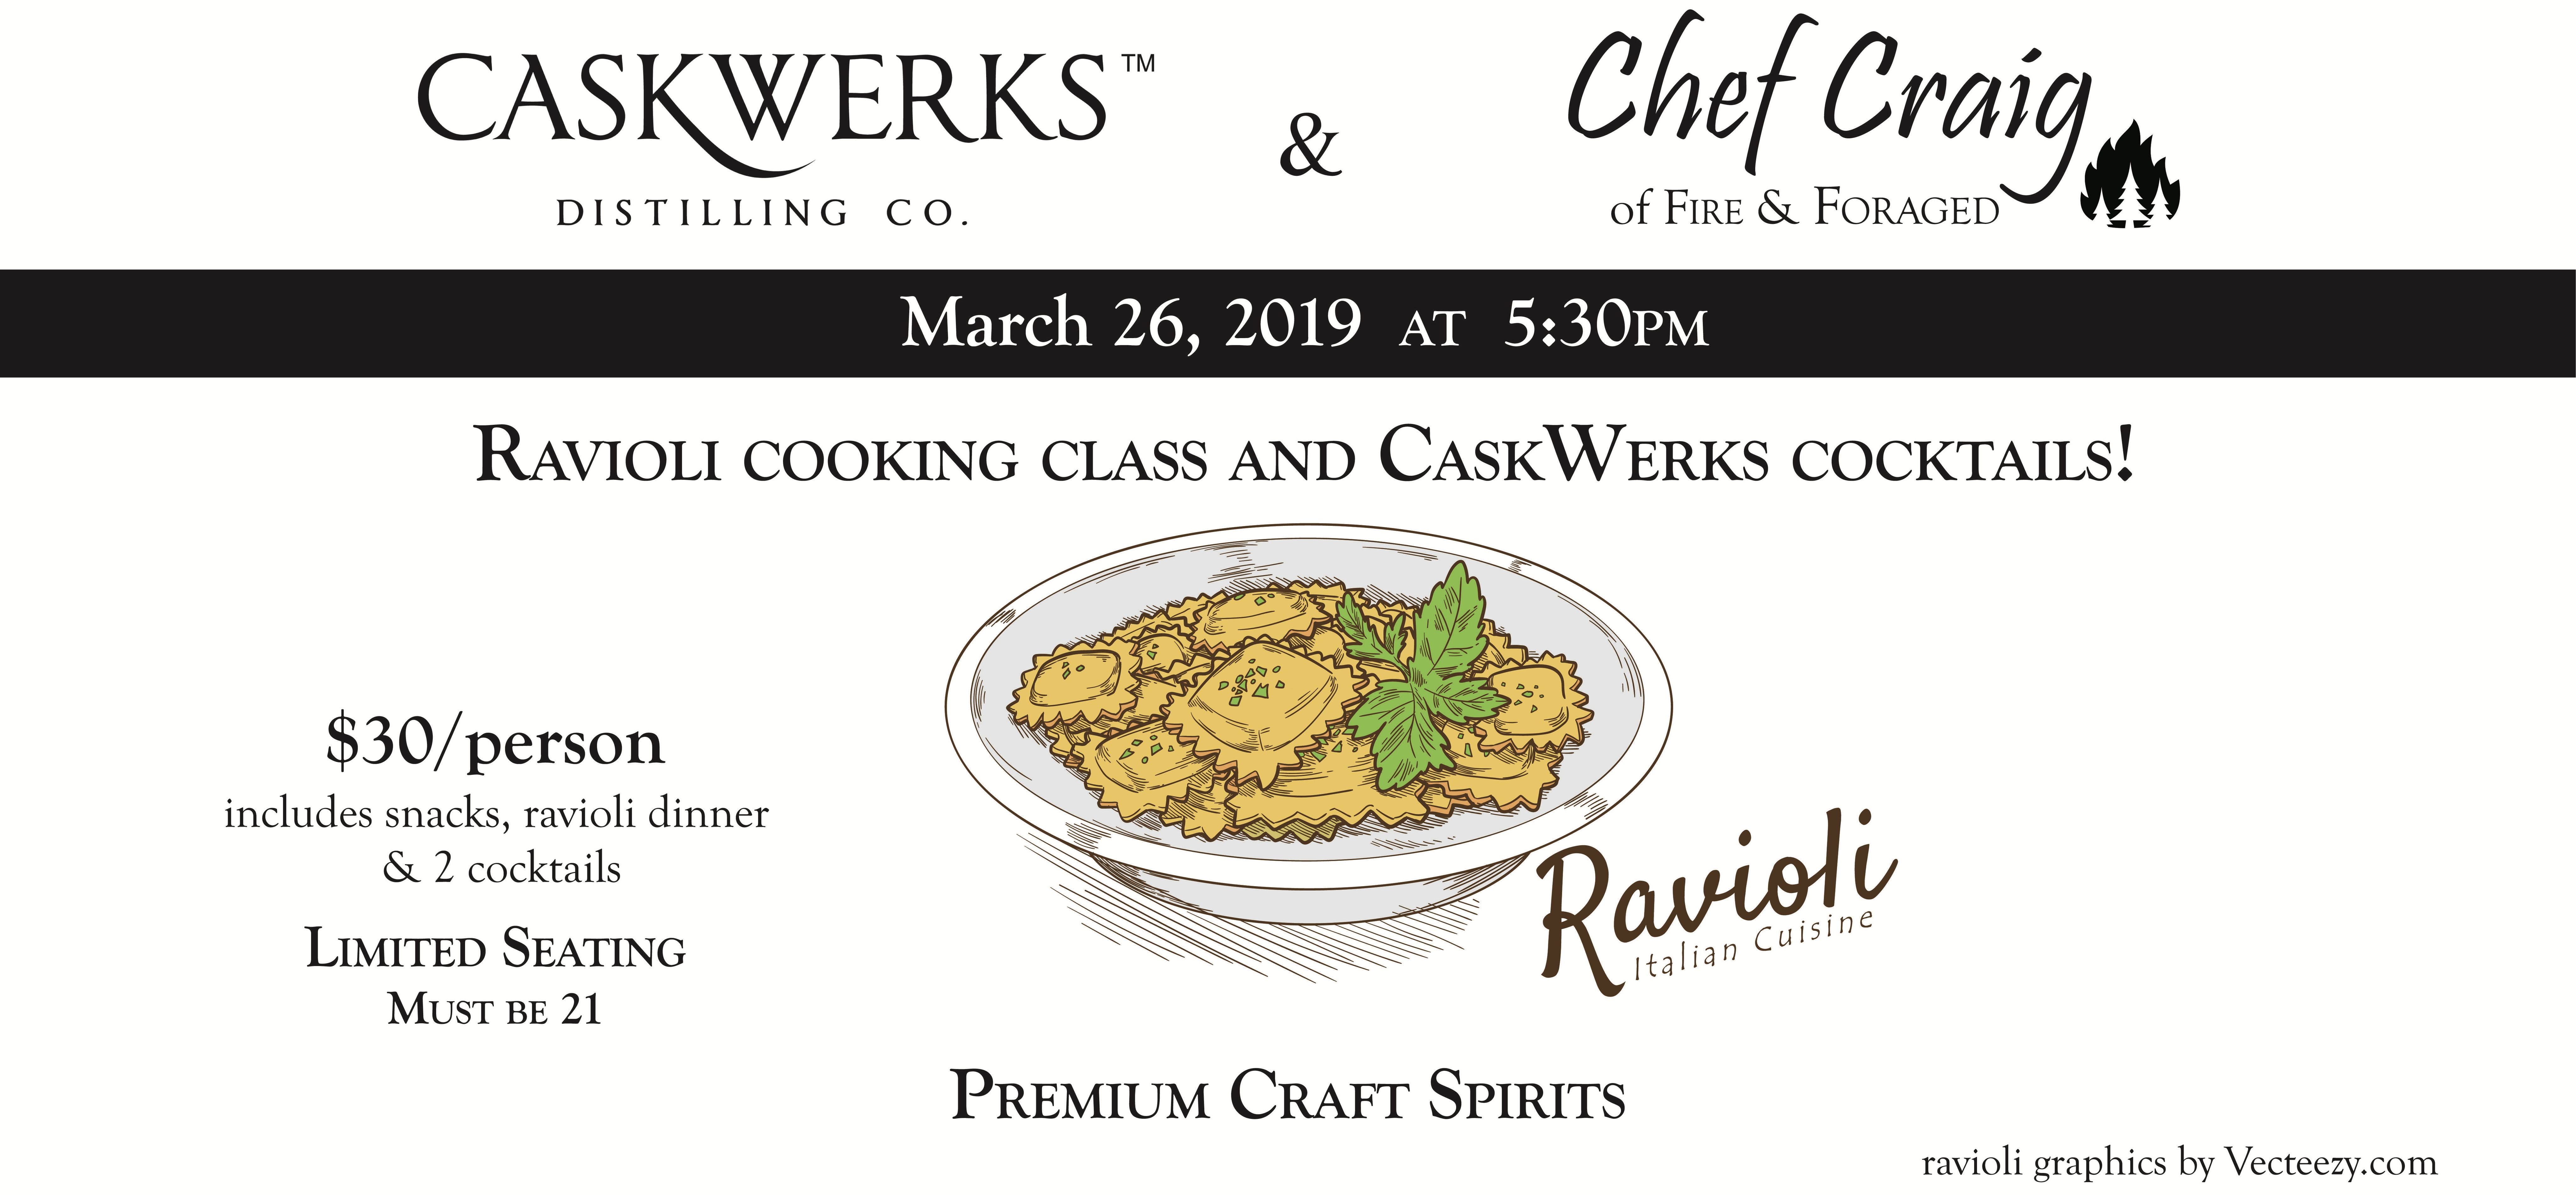 Ravioli Cooking Class with cocktails from CaskWerks Distilling Co.